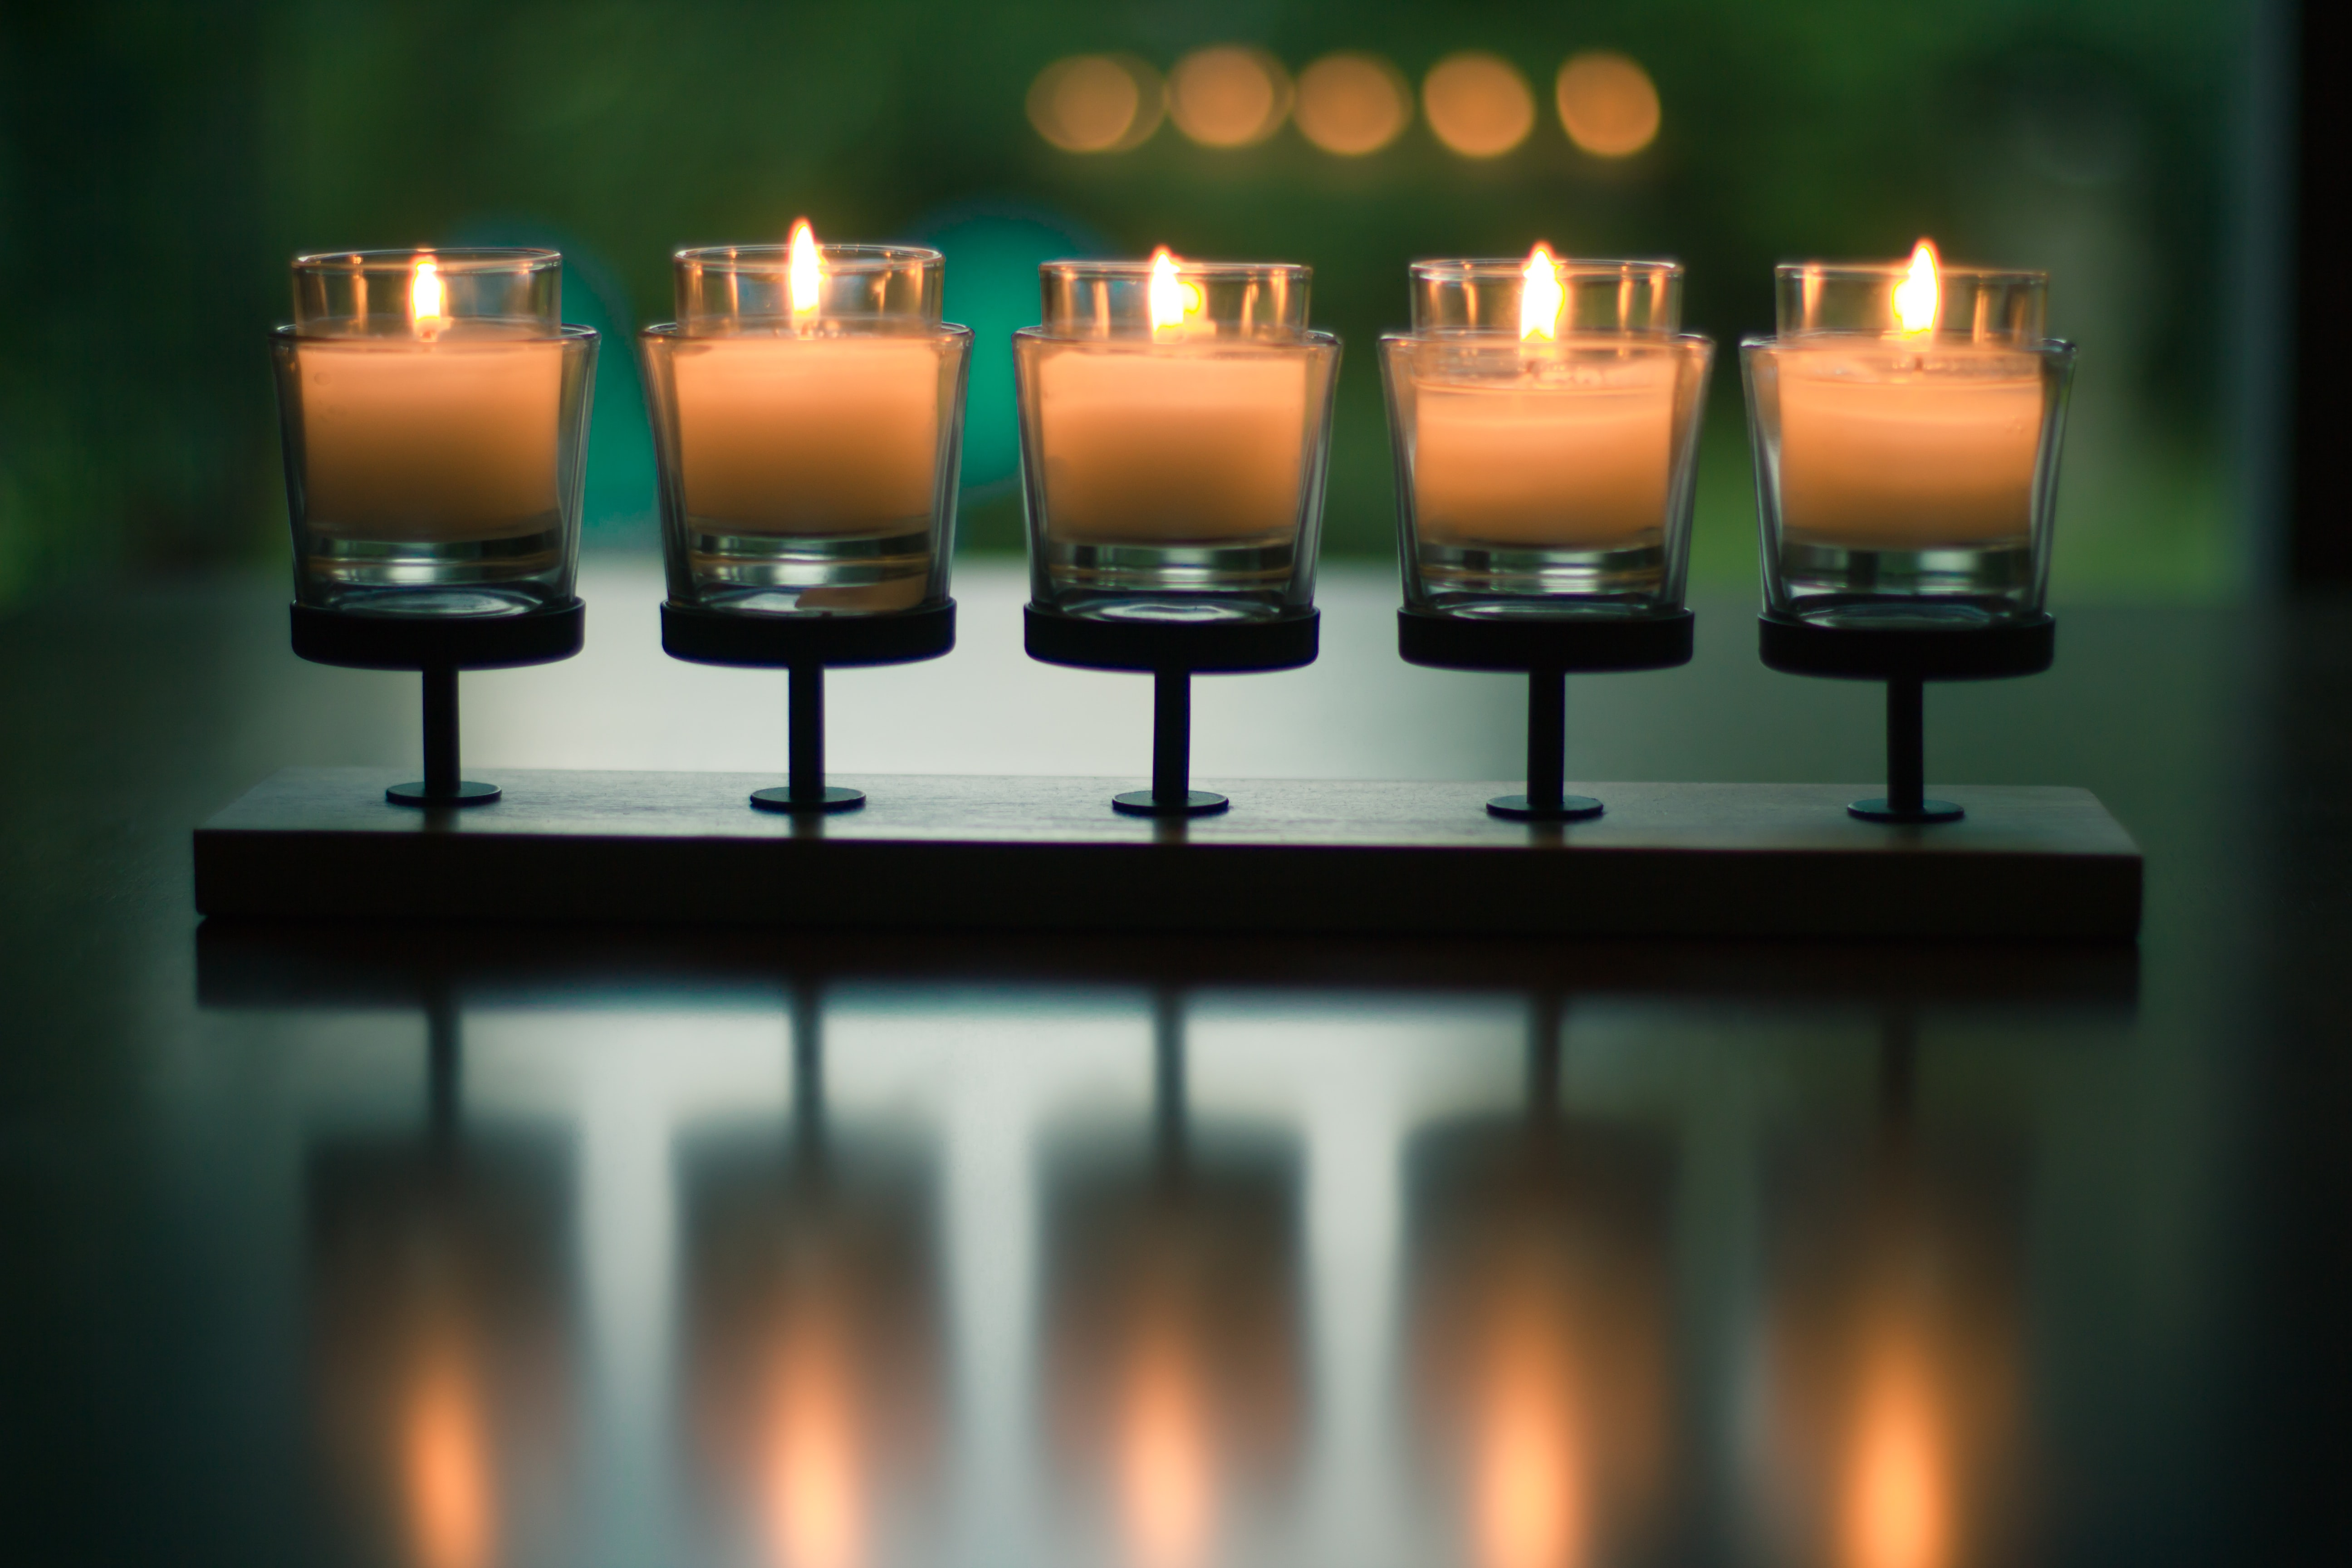 bokeh photography of five lighted votive candles